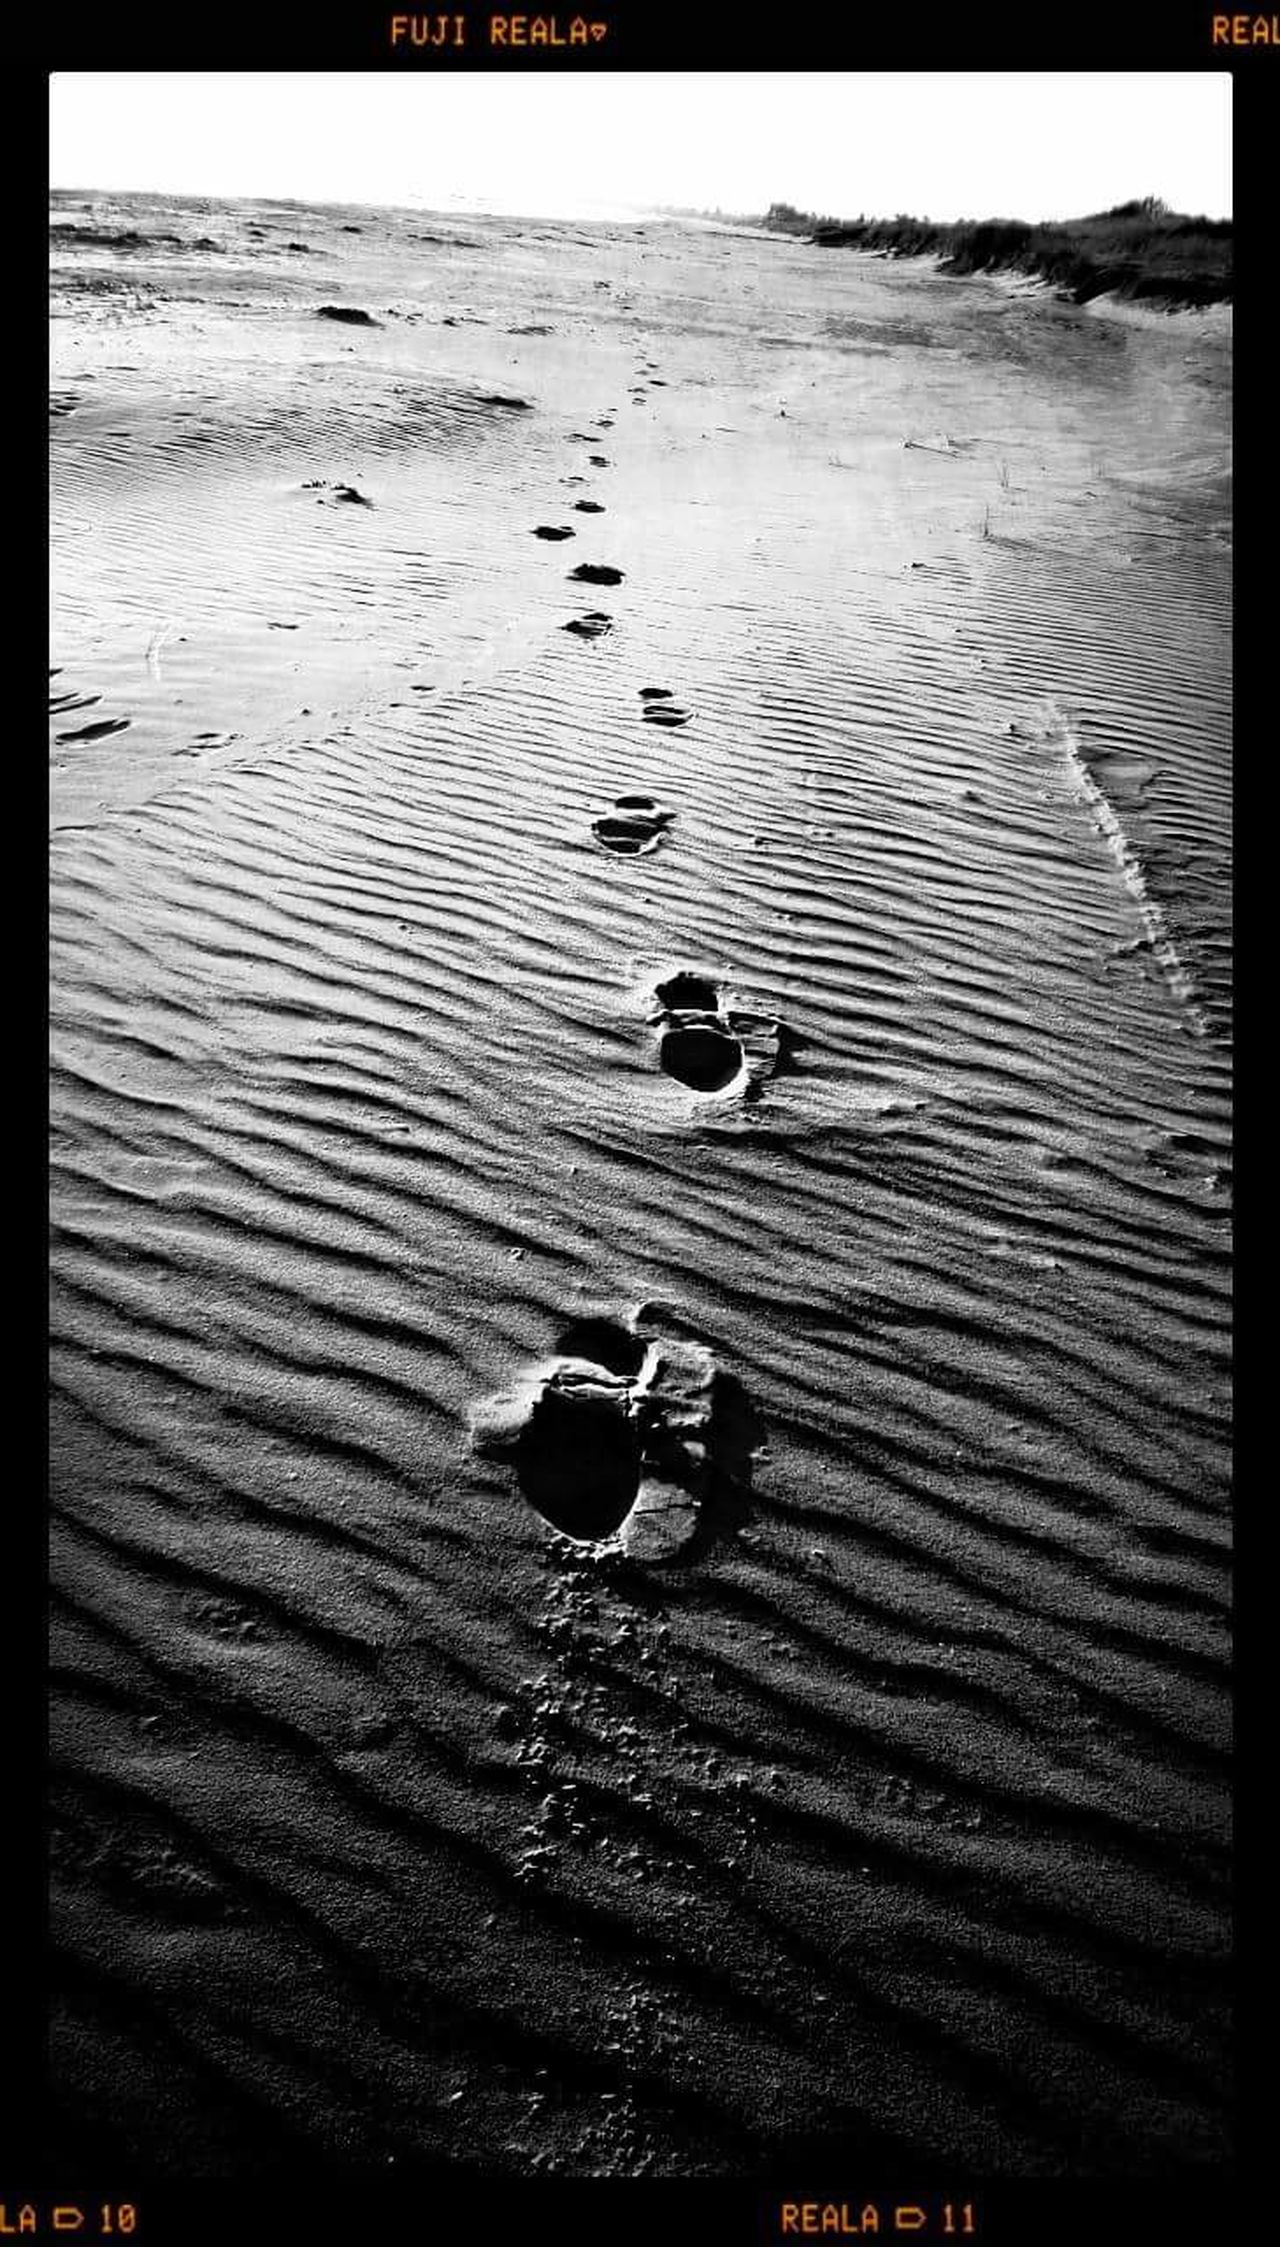 Beach Water High Angle View Nature Outdoors Tranquility Sea No People Day Beauty In Nature Denmark 🇩🇰 Danmark My Life Nordjylland Blackandwhite Black And White EyeEm Nature Lover EyeEm